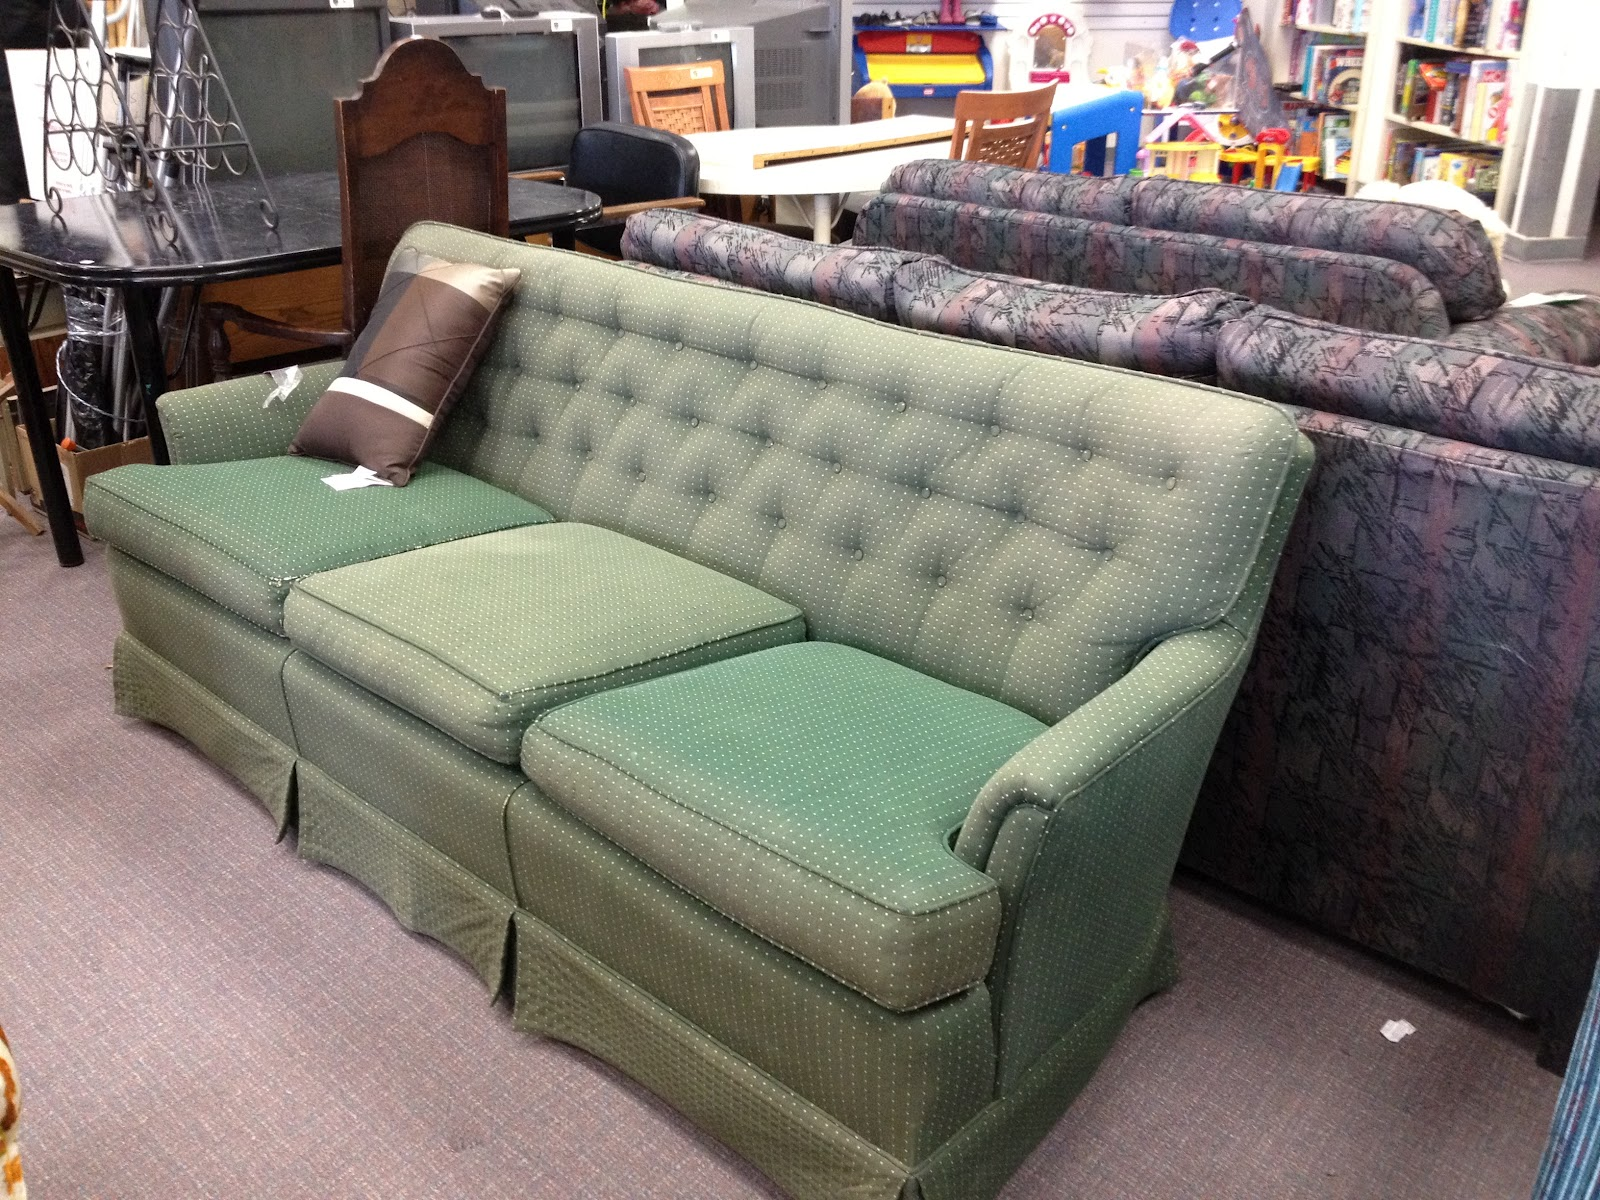 So, This Is The Story About A Chesterfield I Found At Catholic Charities  For $45. SOLD. I Brought It Home And Began My First Re Upholstery Job.